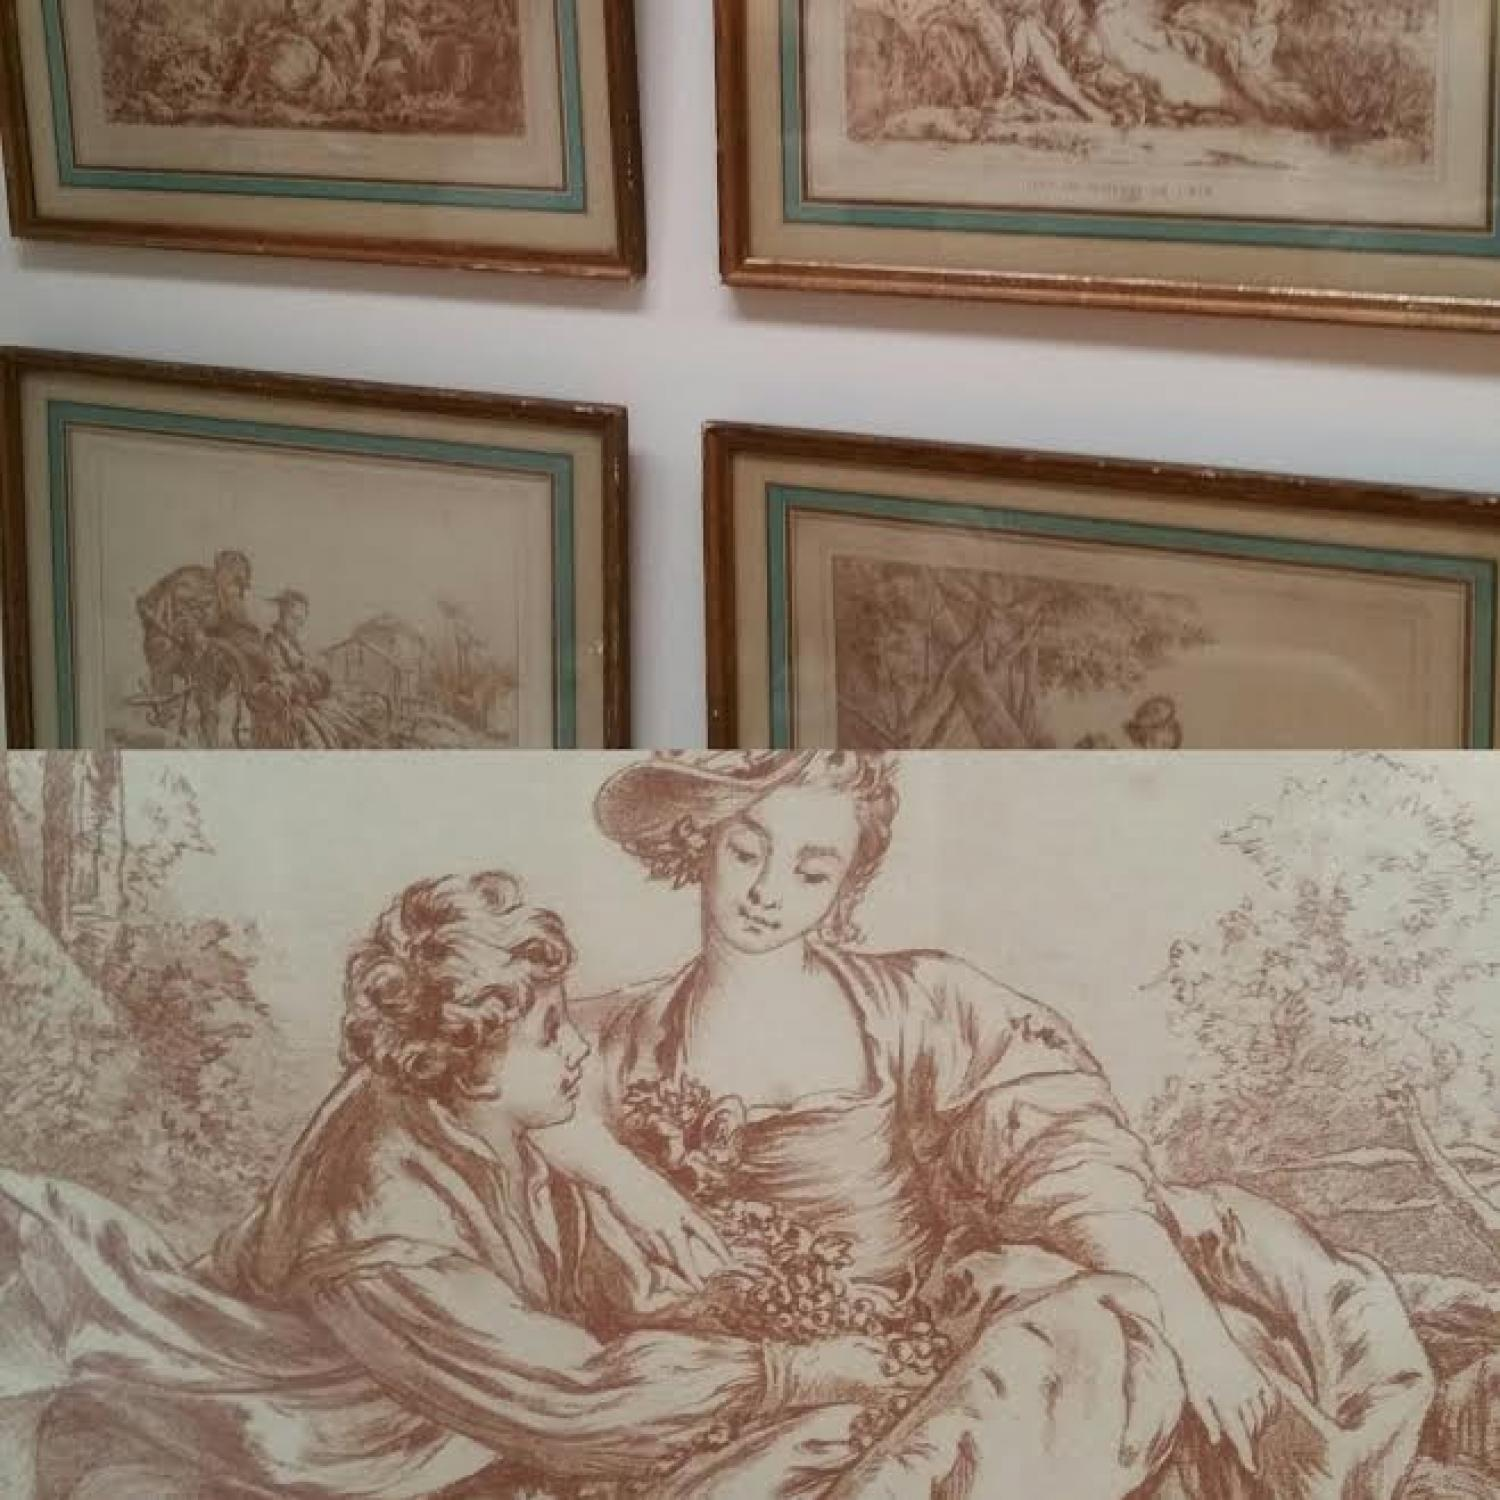 Set of 4 French four seasons prints